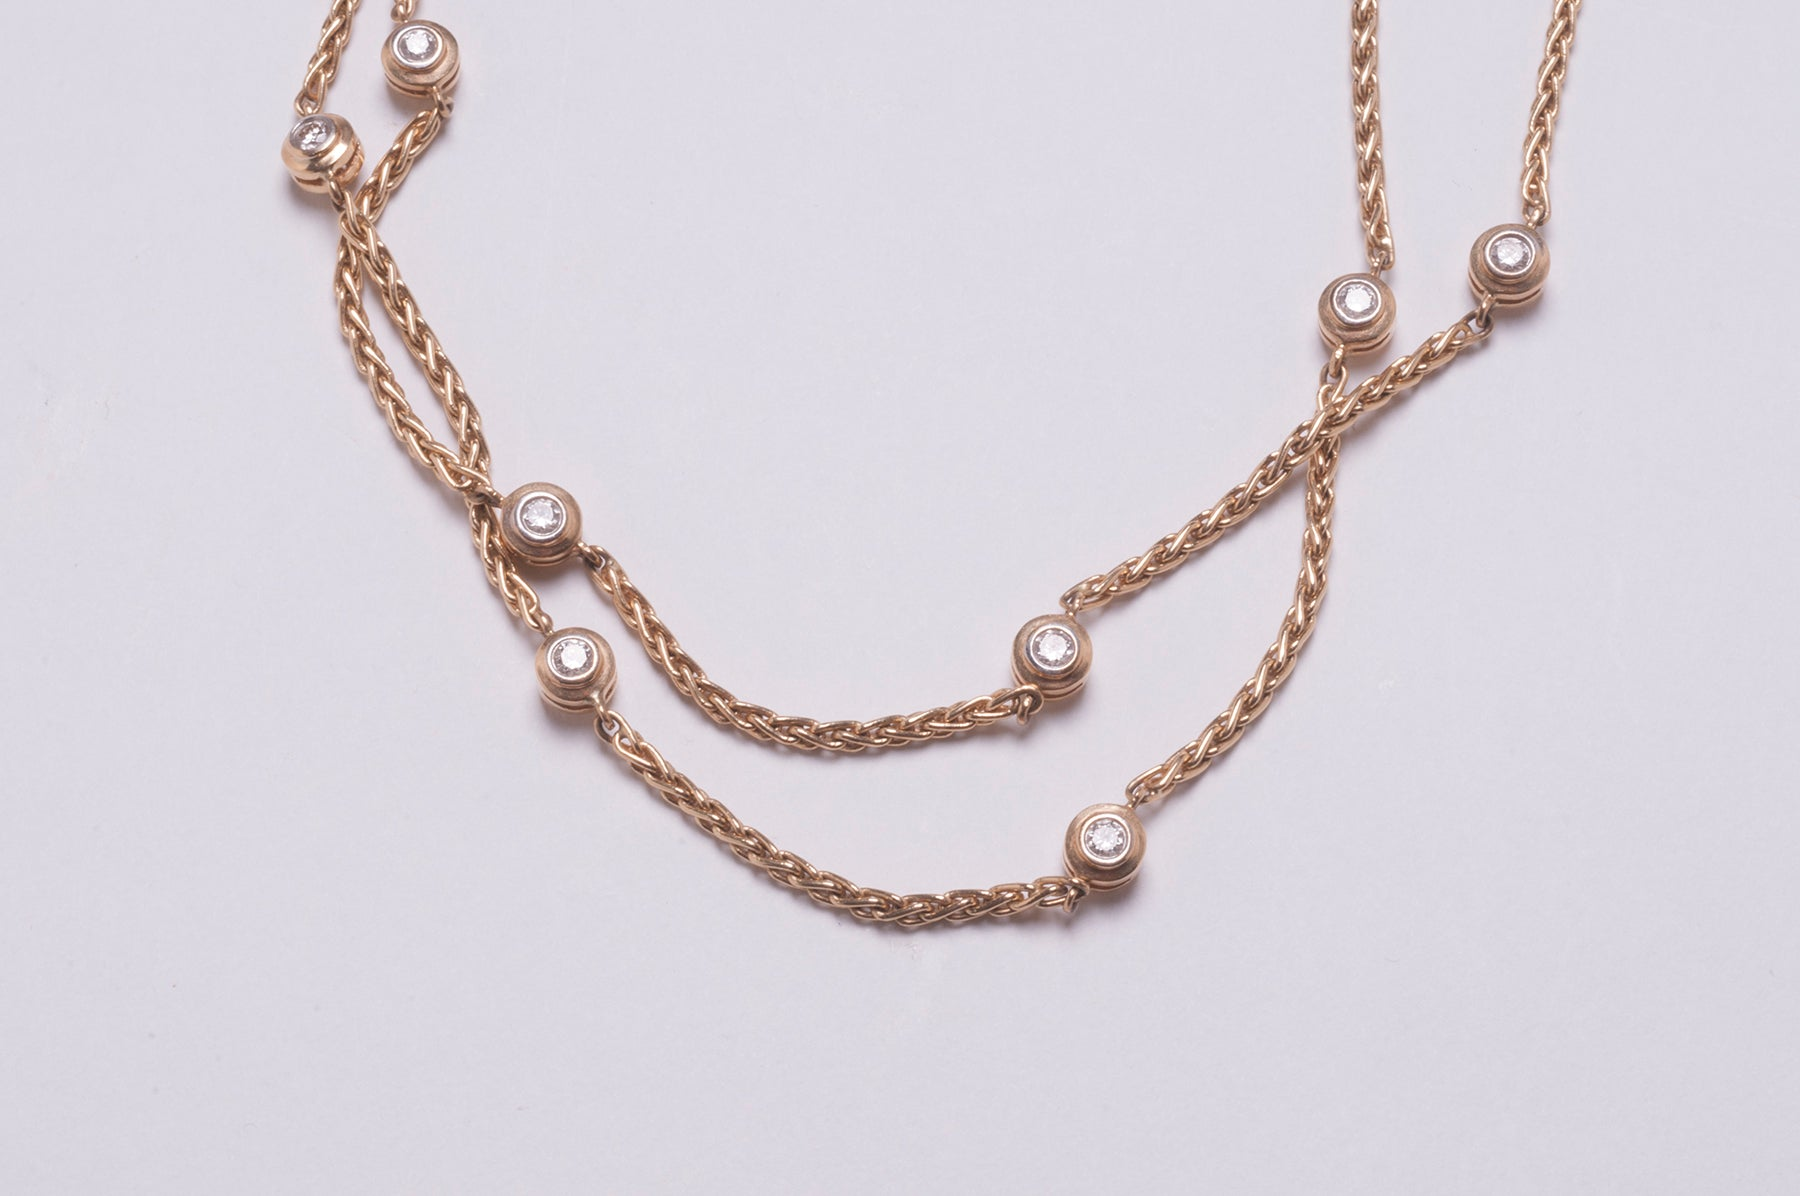 DOUBLE-FACED DIAMOND CHAIN IN 18 KARAT YELLOW GOLD